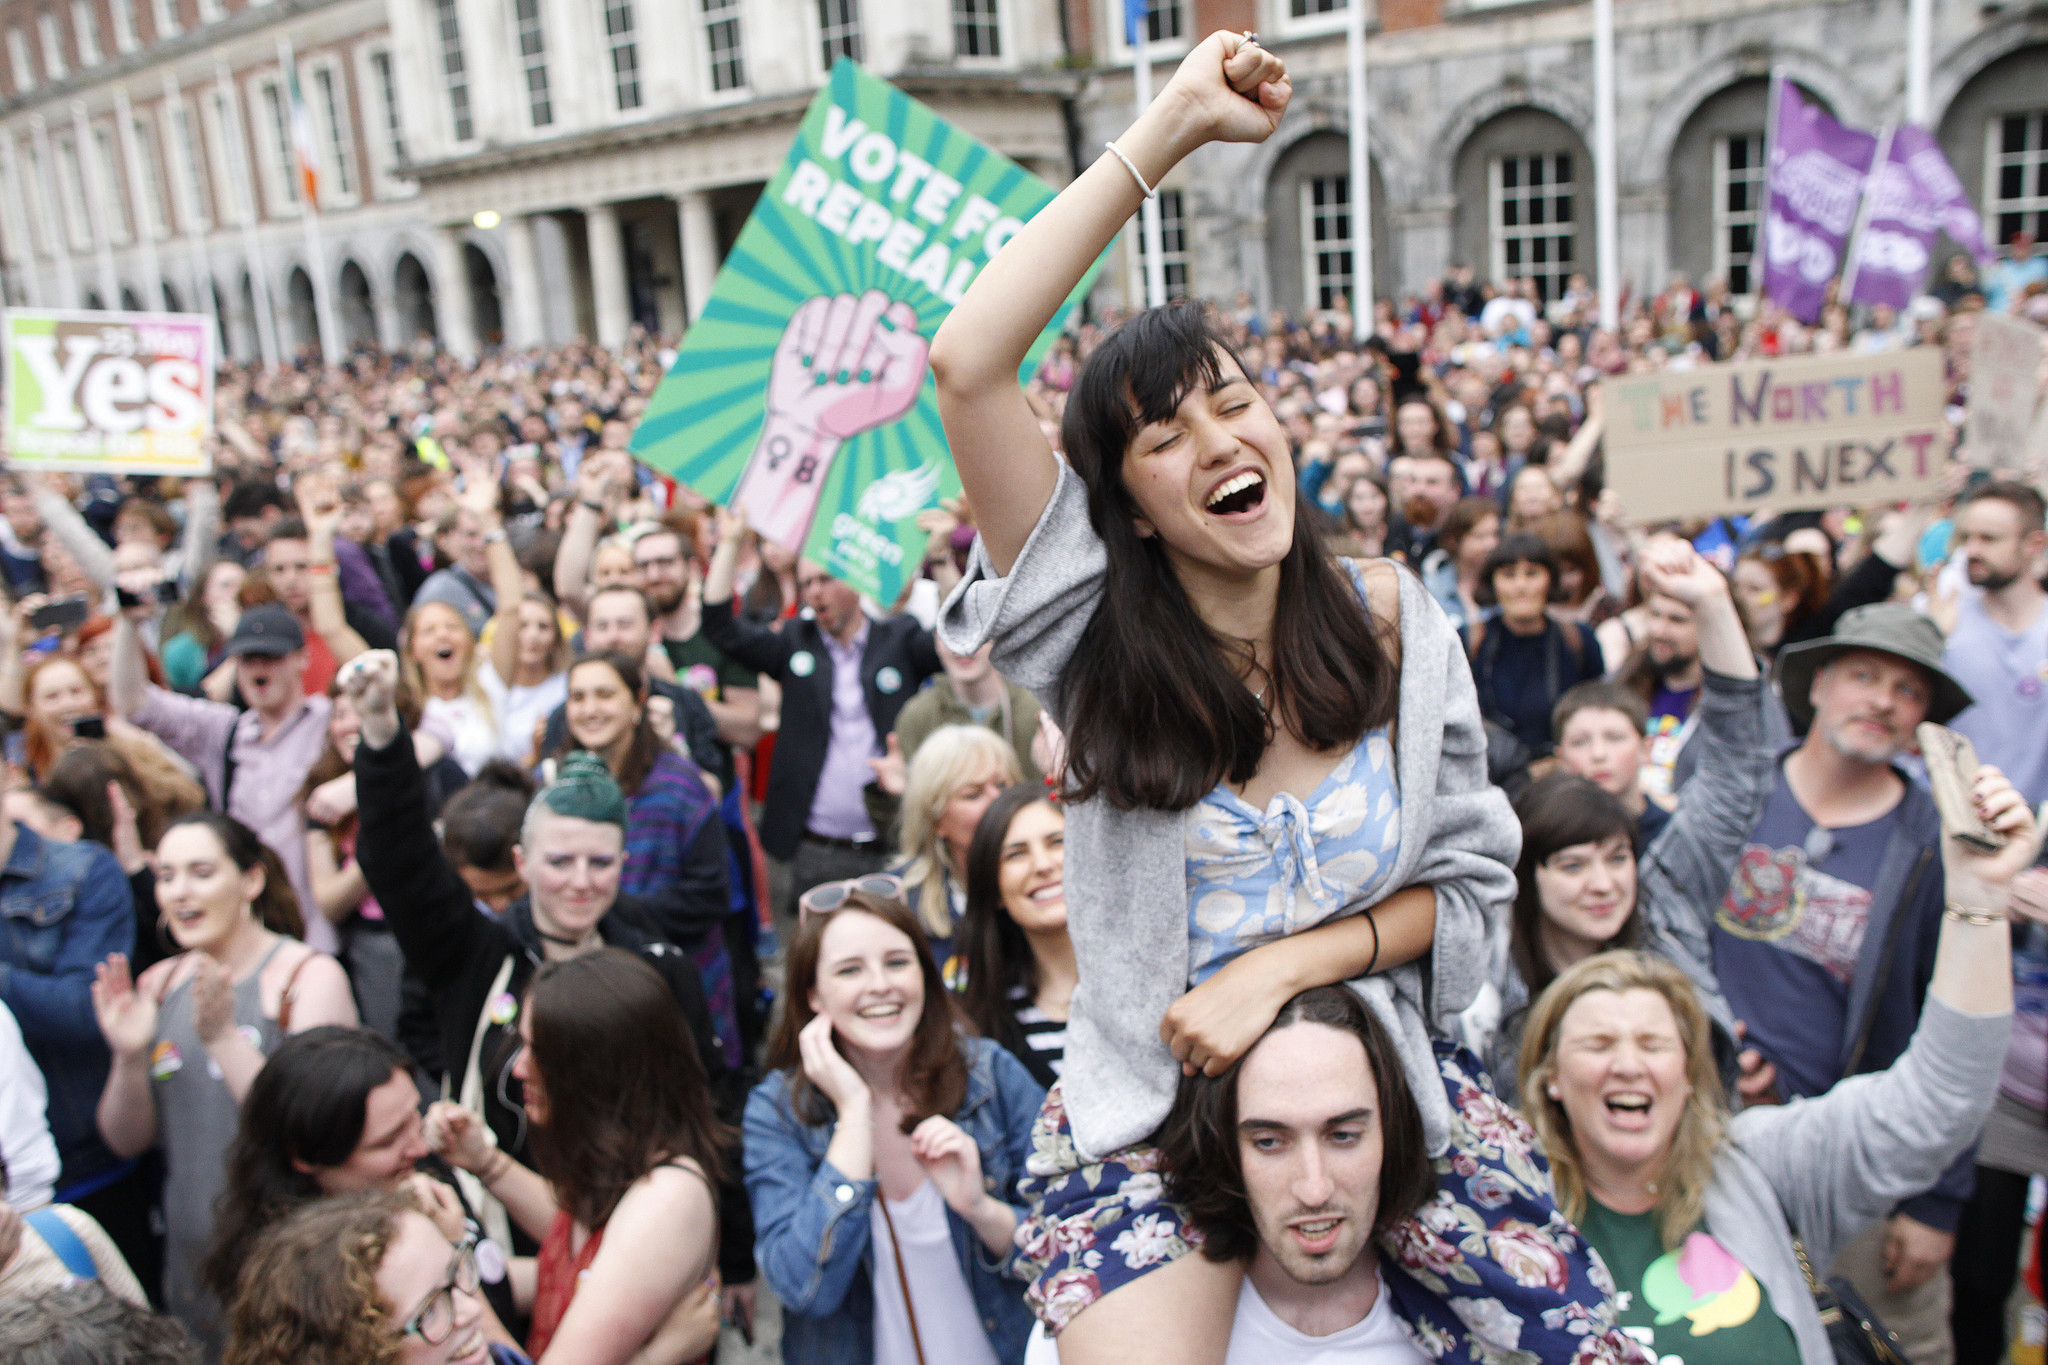 abortion in ireland On friday, ireland voted in a landslide to repeal its near-total constitutional ban  on abortion, paving the way for far less restrictive abortion laws.